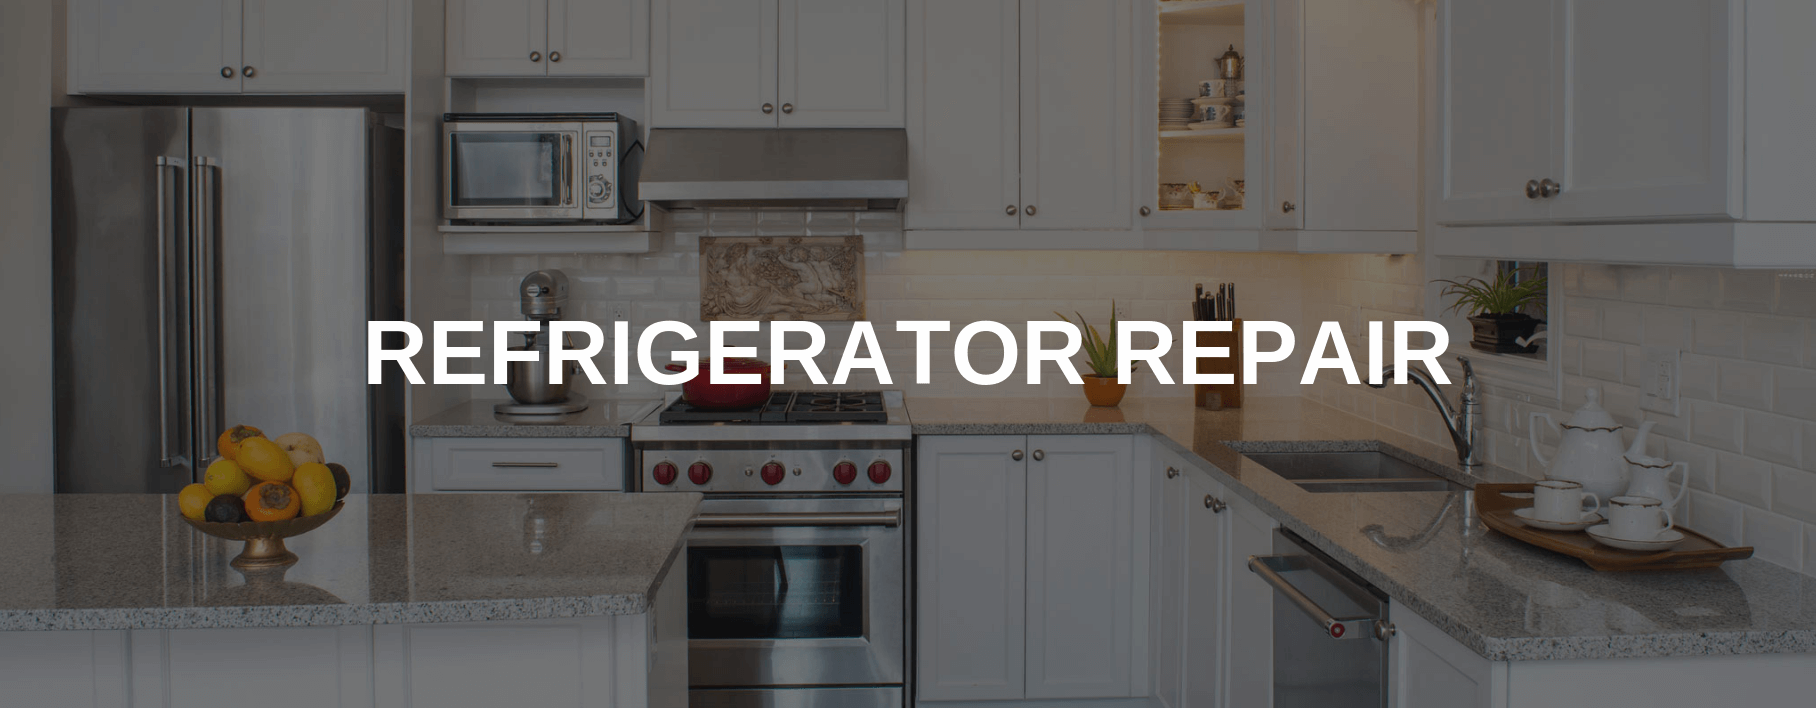 refrigerator repair spokane